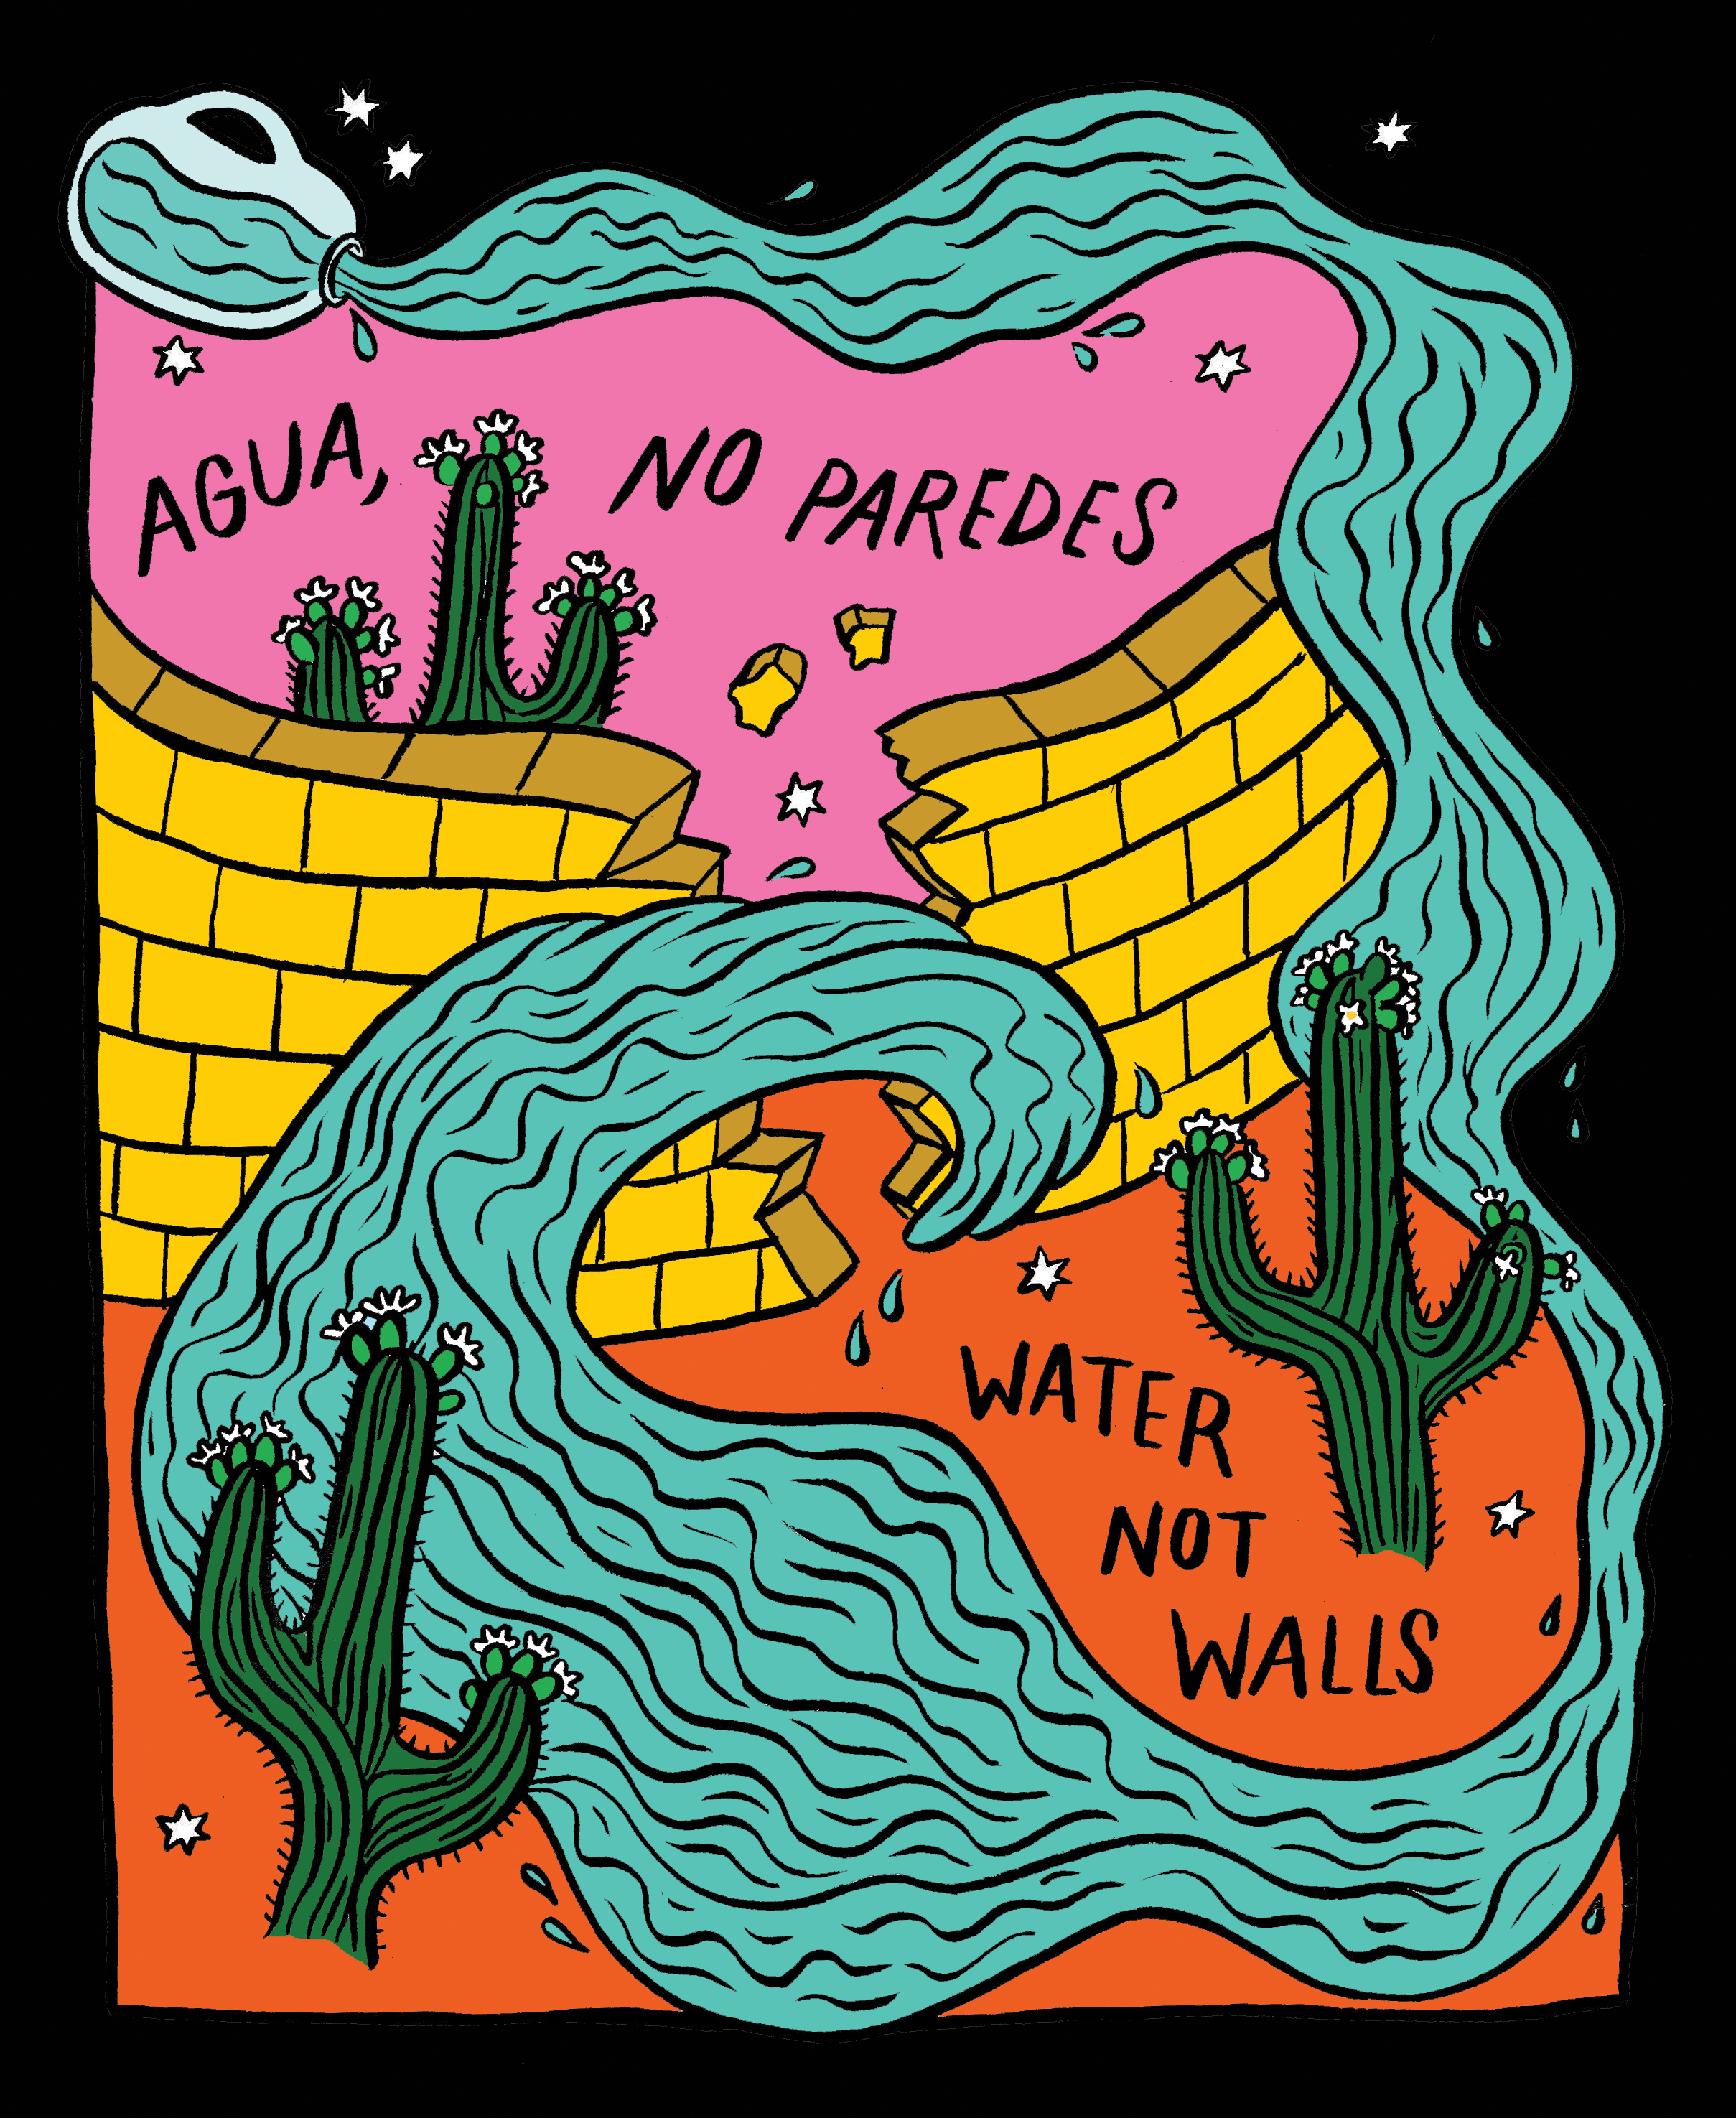 AGUA, NO PAREDES/WATER NOT WALLS:  FOR NO MORE DEATHS